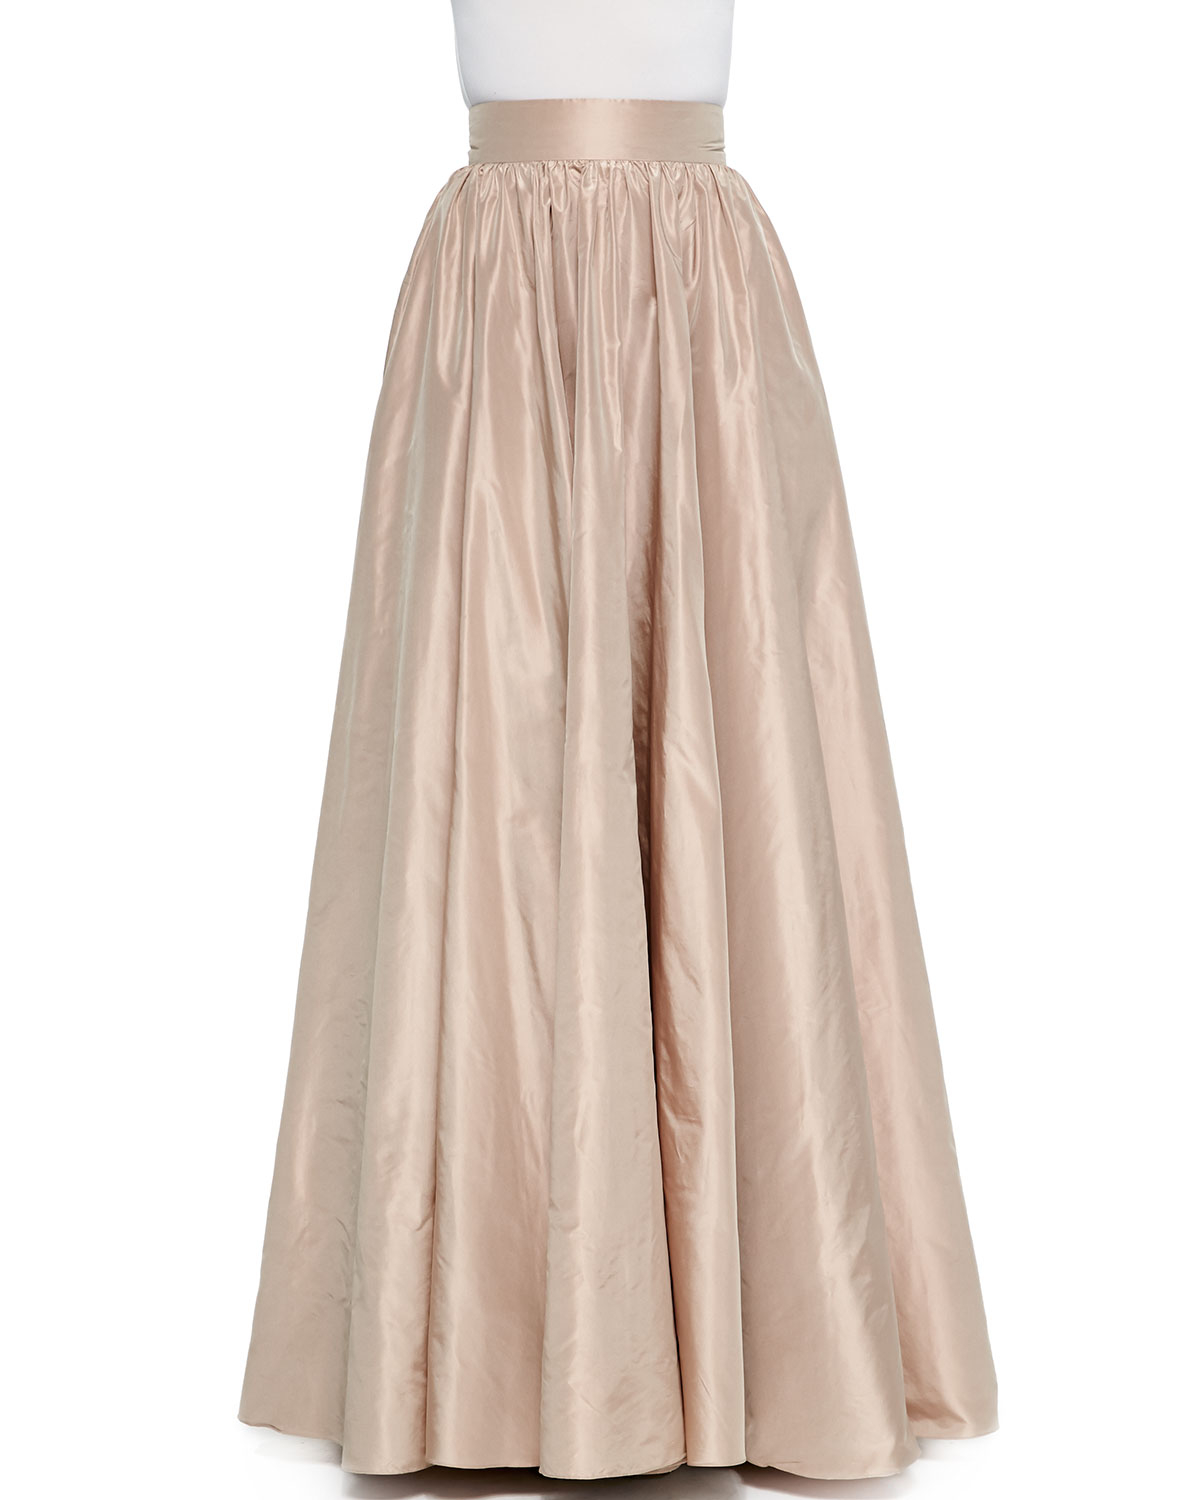 Jenny packham Full Wide-Waist Ball Skirt in Metallic | Lyst